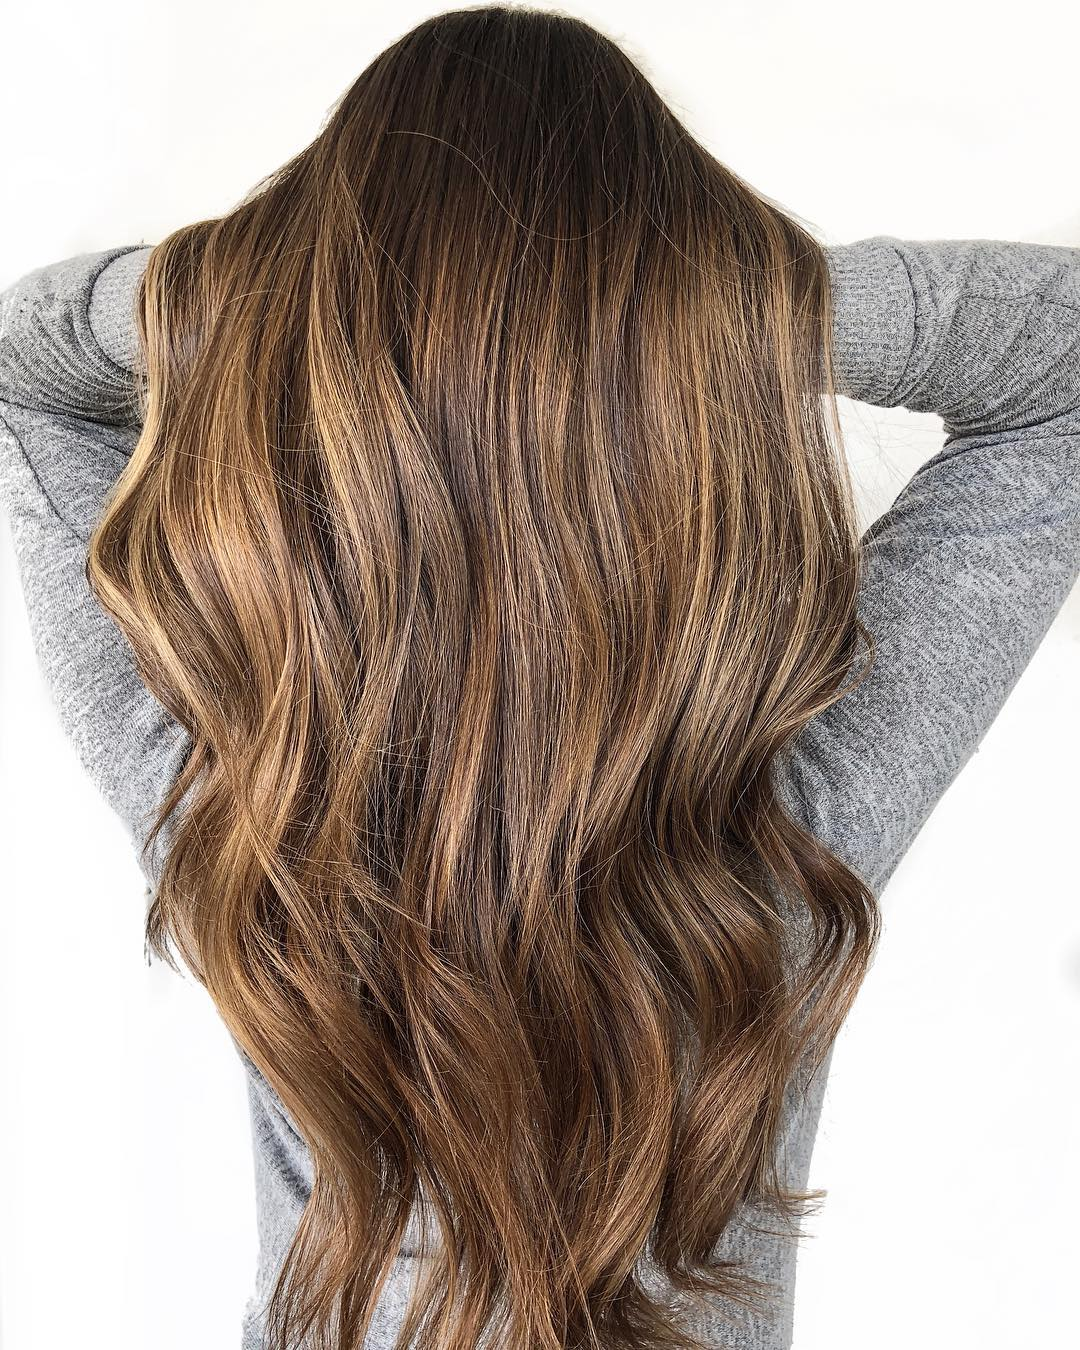 Brunette Hair with Walnut Brown Highlights